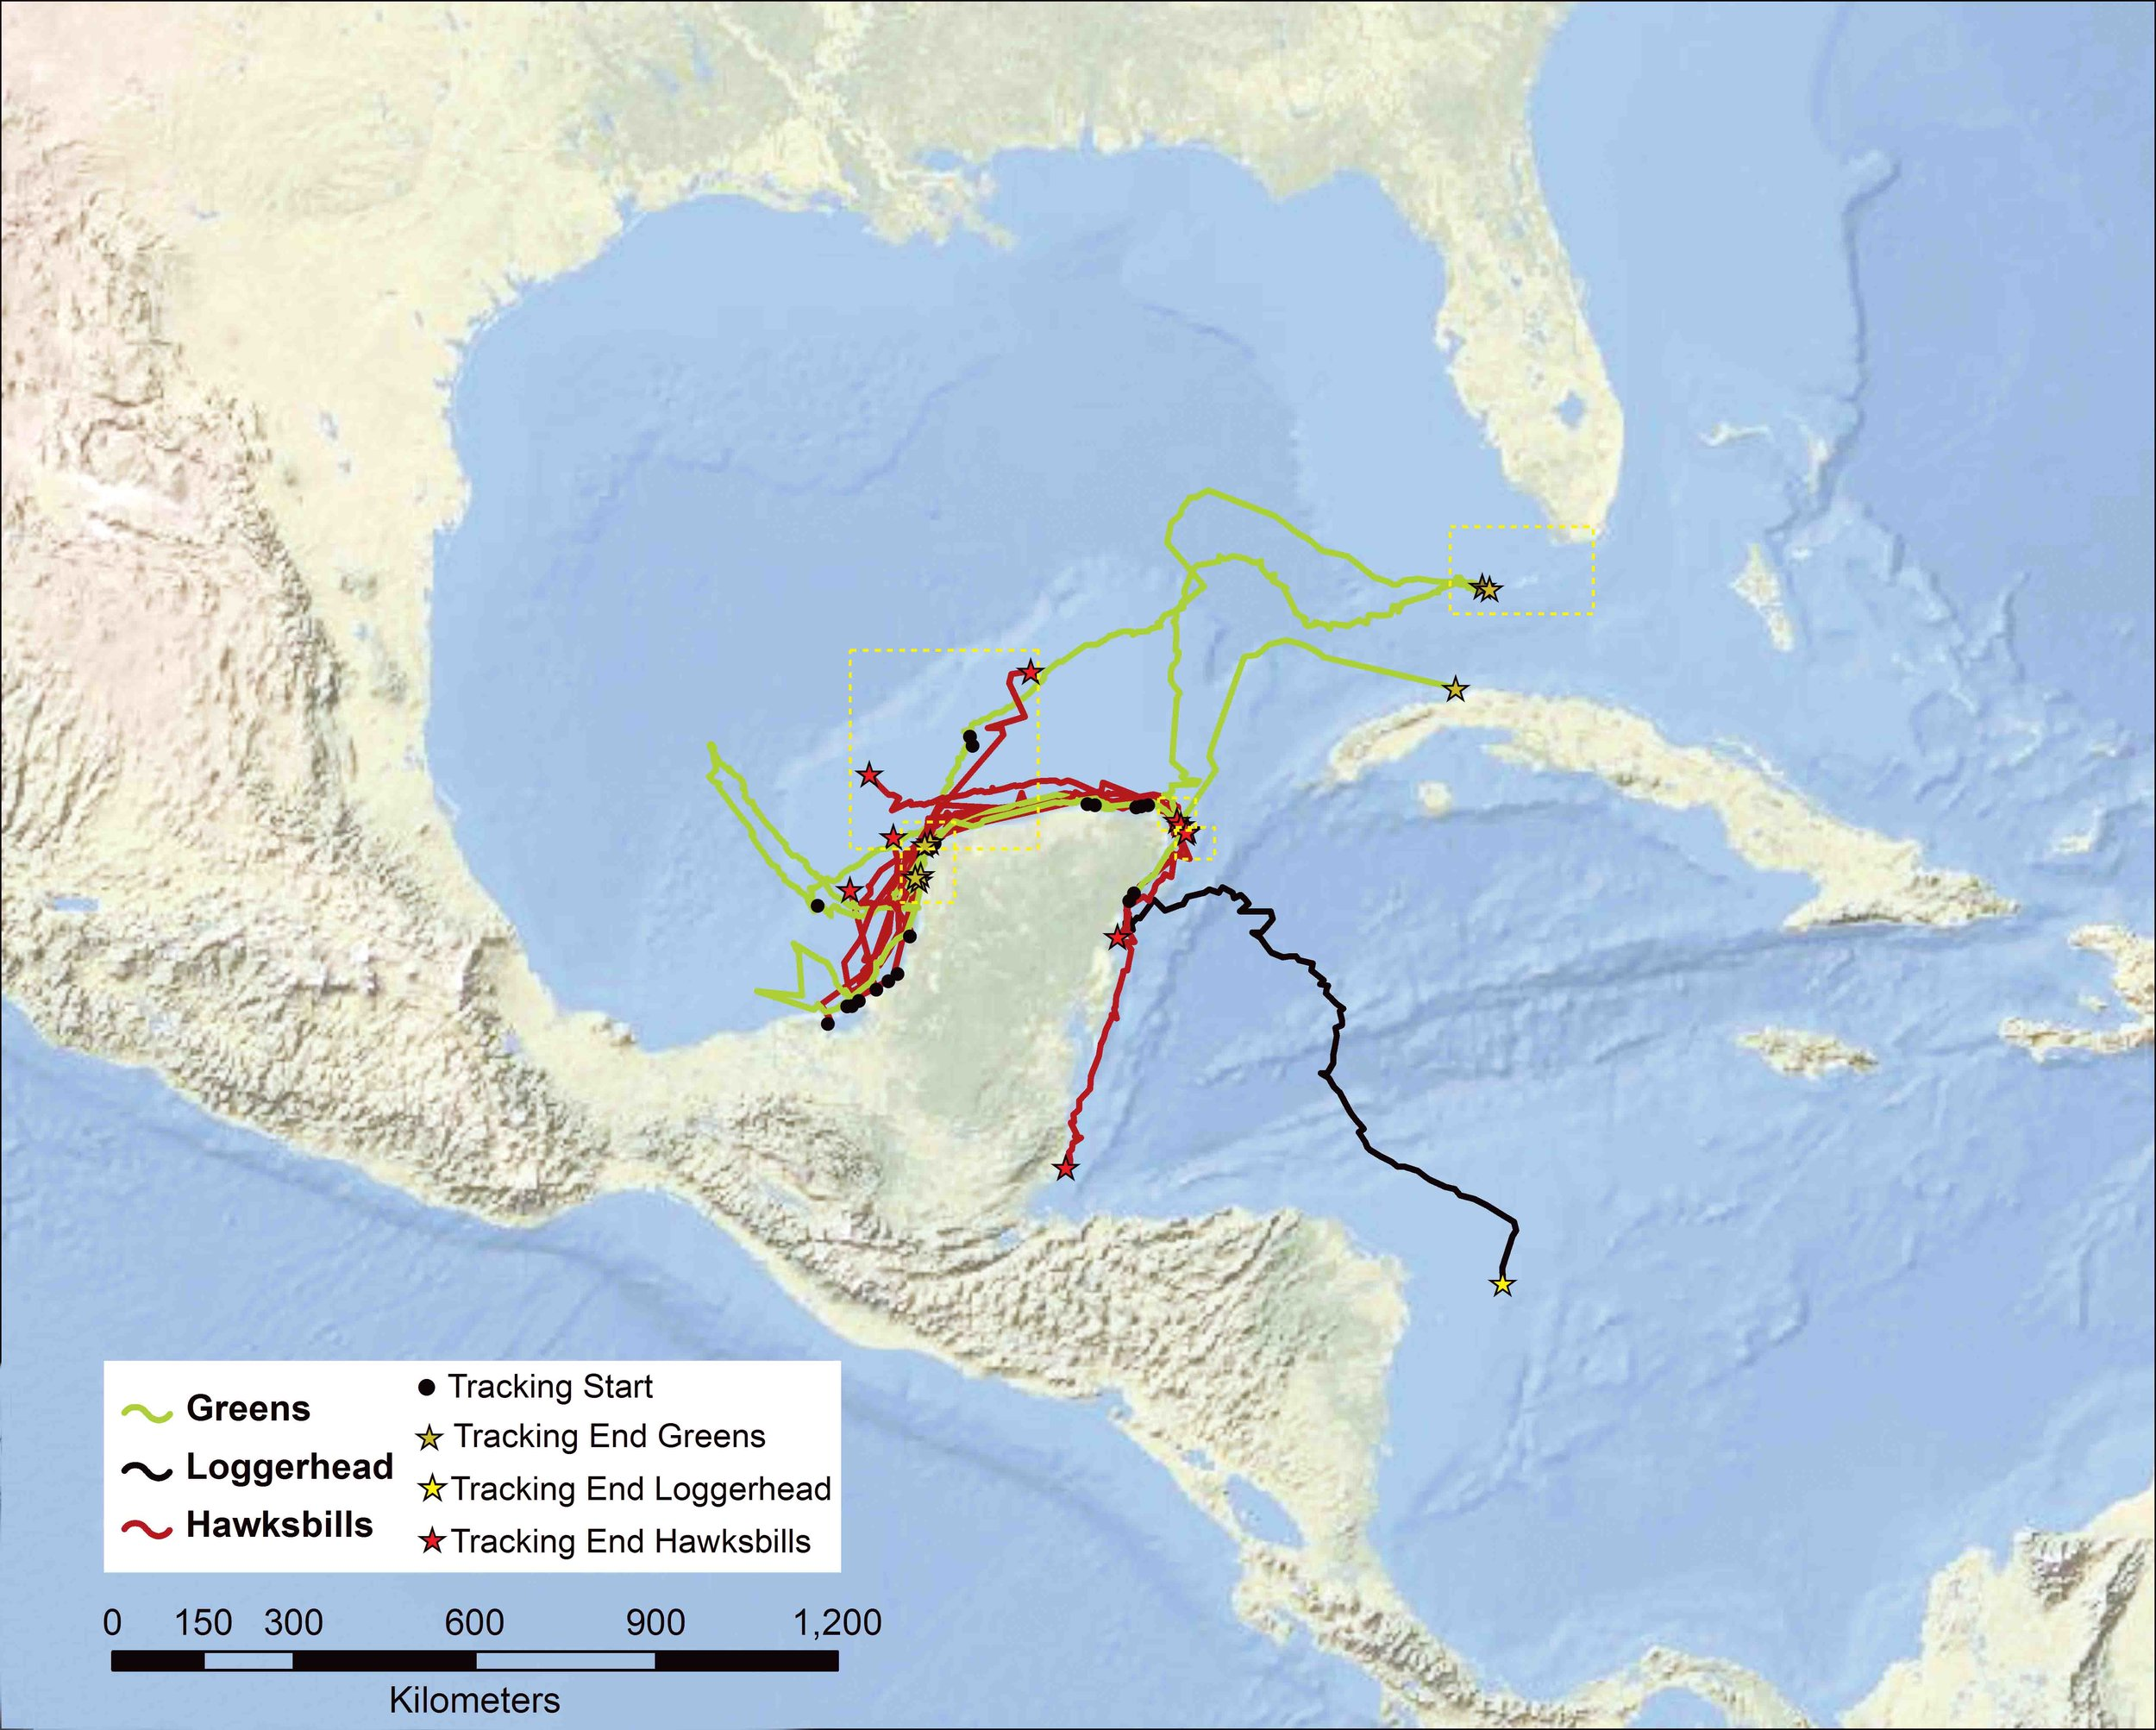 Sea turtle movements from nesting sites on the Yucatán peninsula, Mexico. Main map shows tracks of hawksbills, green turtles, and a loggerhead. Inset maps show core habitats used by hawksbills (A and B) and green turtles (C, D, and E). AT LEFT: Green turtle hatchlings race to the sea on Mexico's Yucatán peninsula. © Claudio Contreras